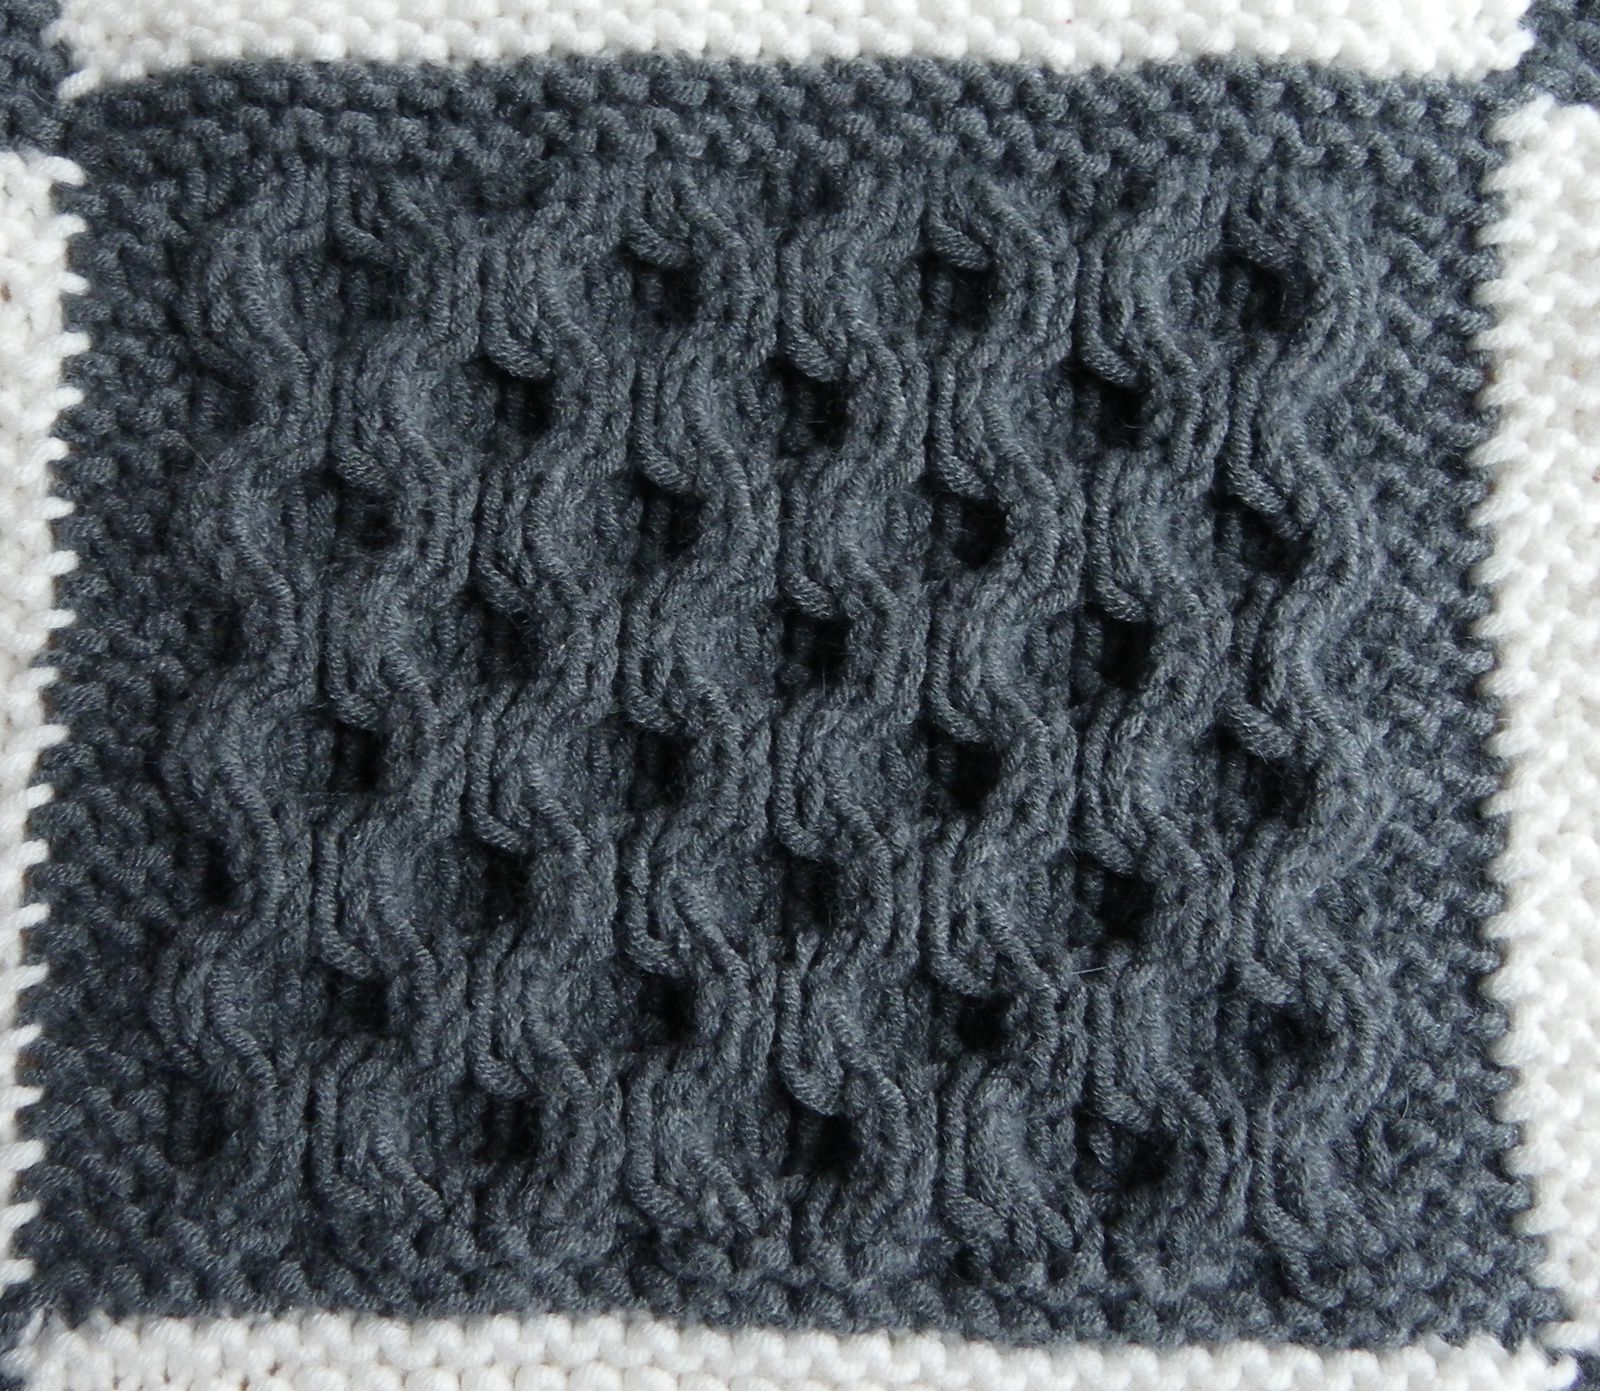 KAL boucle d'or version bébé : carré 14 version A